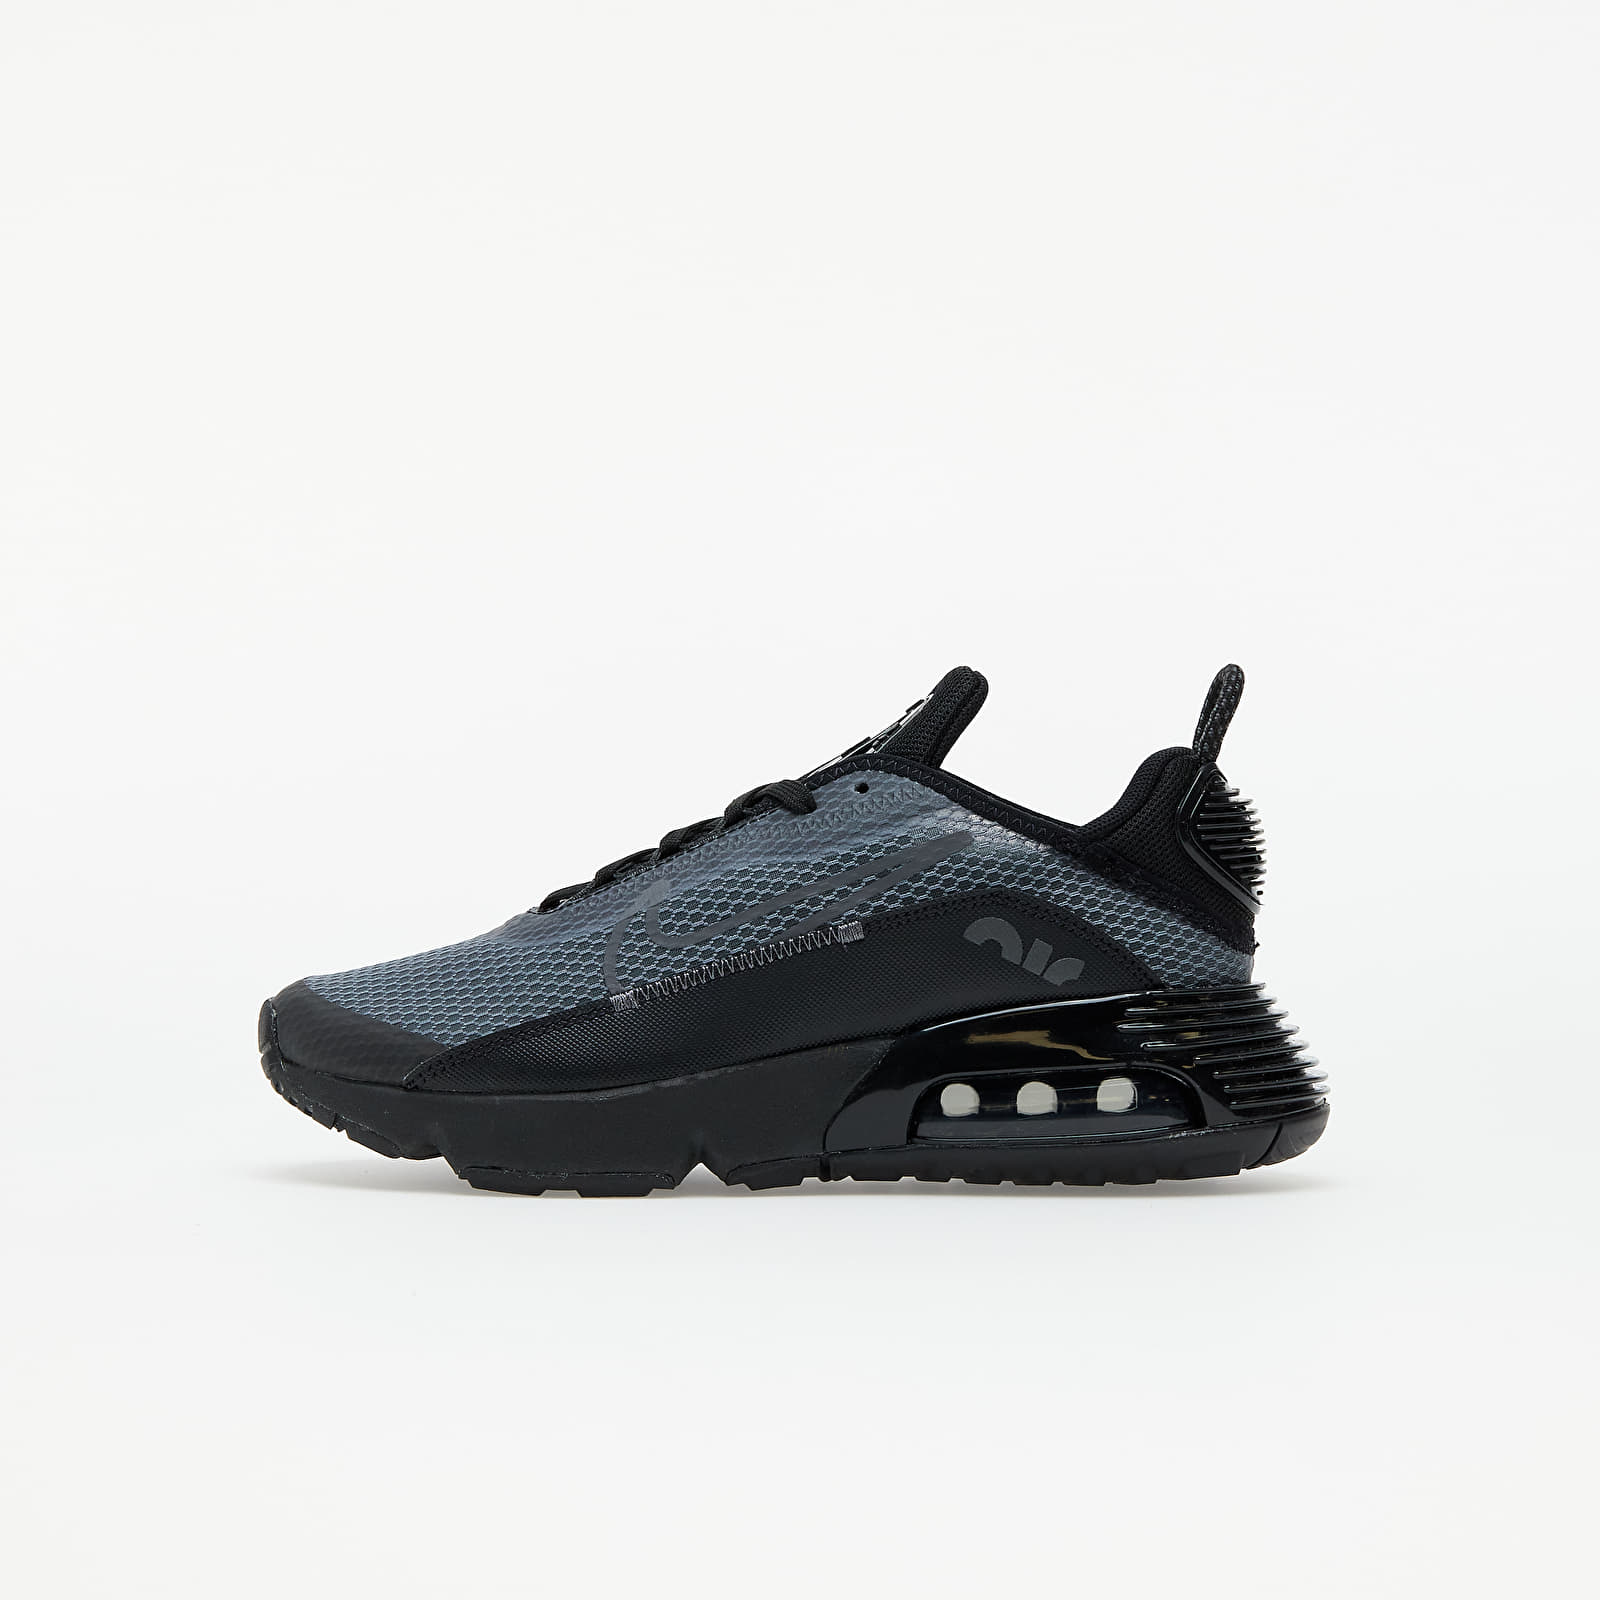 Nike Air Max 2090 (GS) Black/ Anthracite-Wolf Grey-Black EUR 37.5